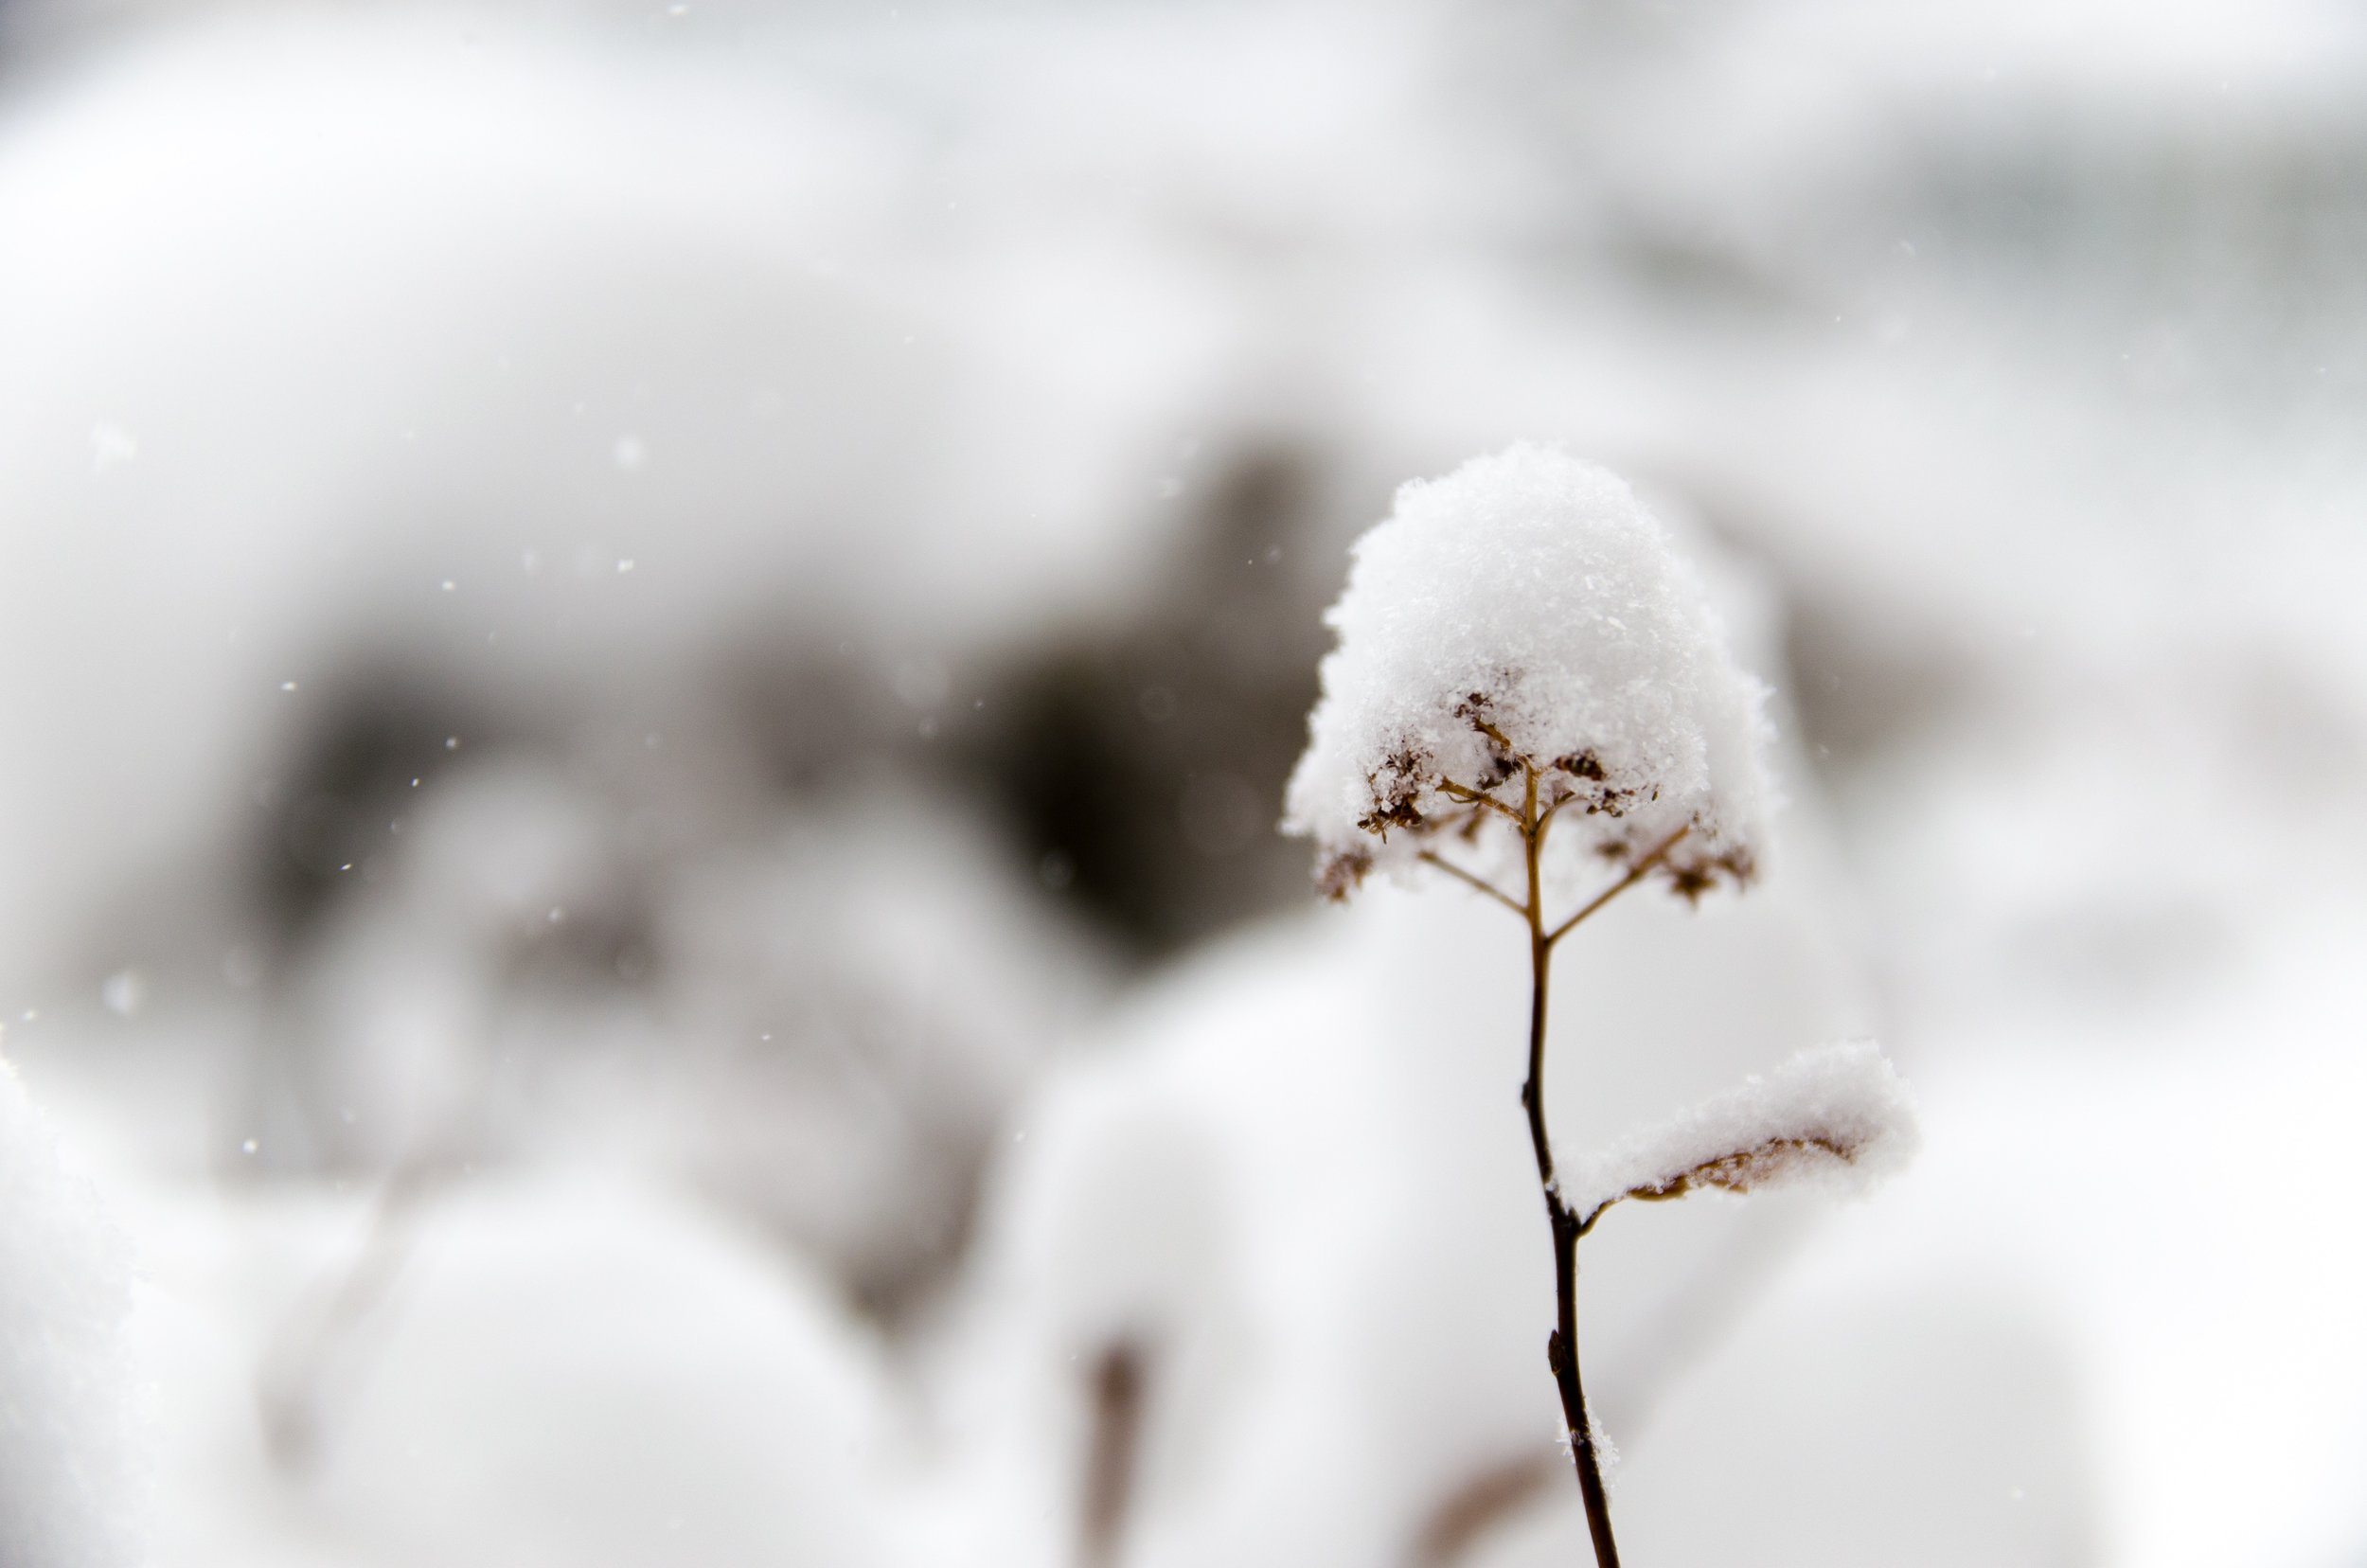 snow-photography-tips-exposure-compensation